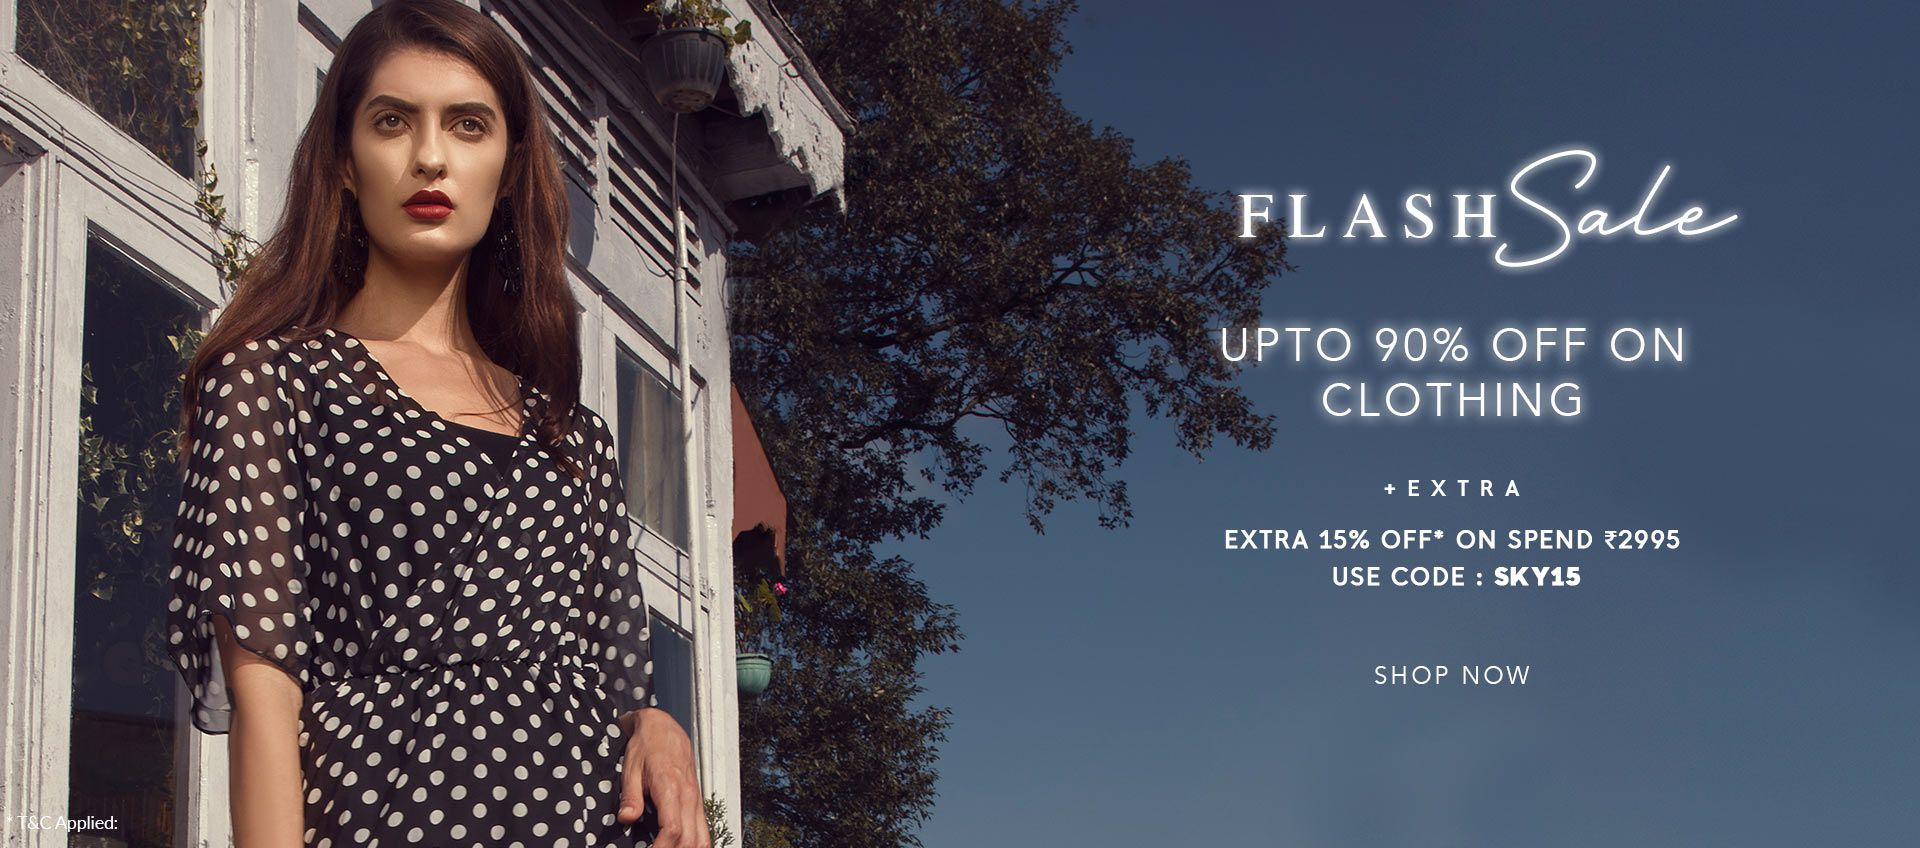 FLASH SALE UPTO 90% OFF